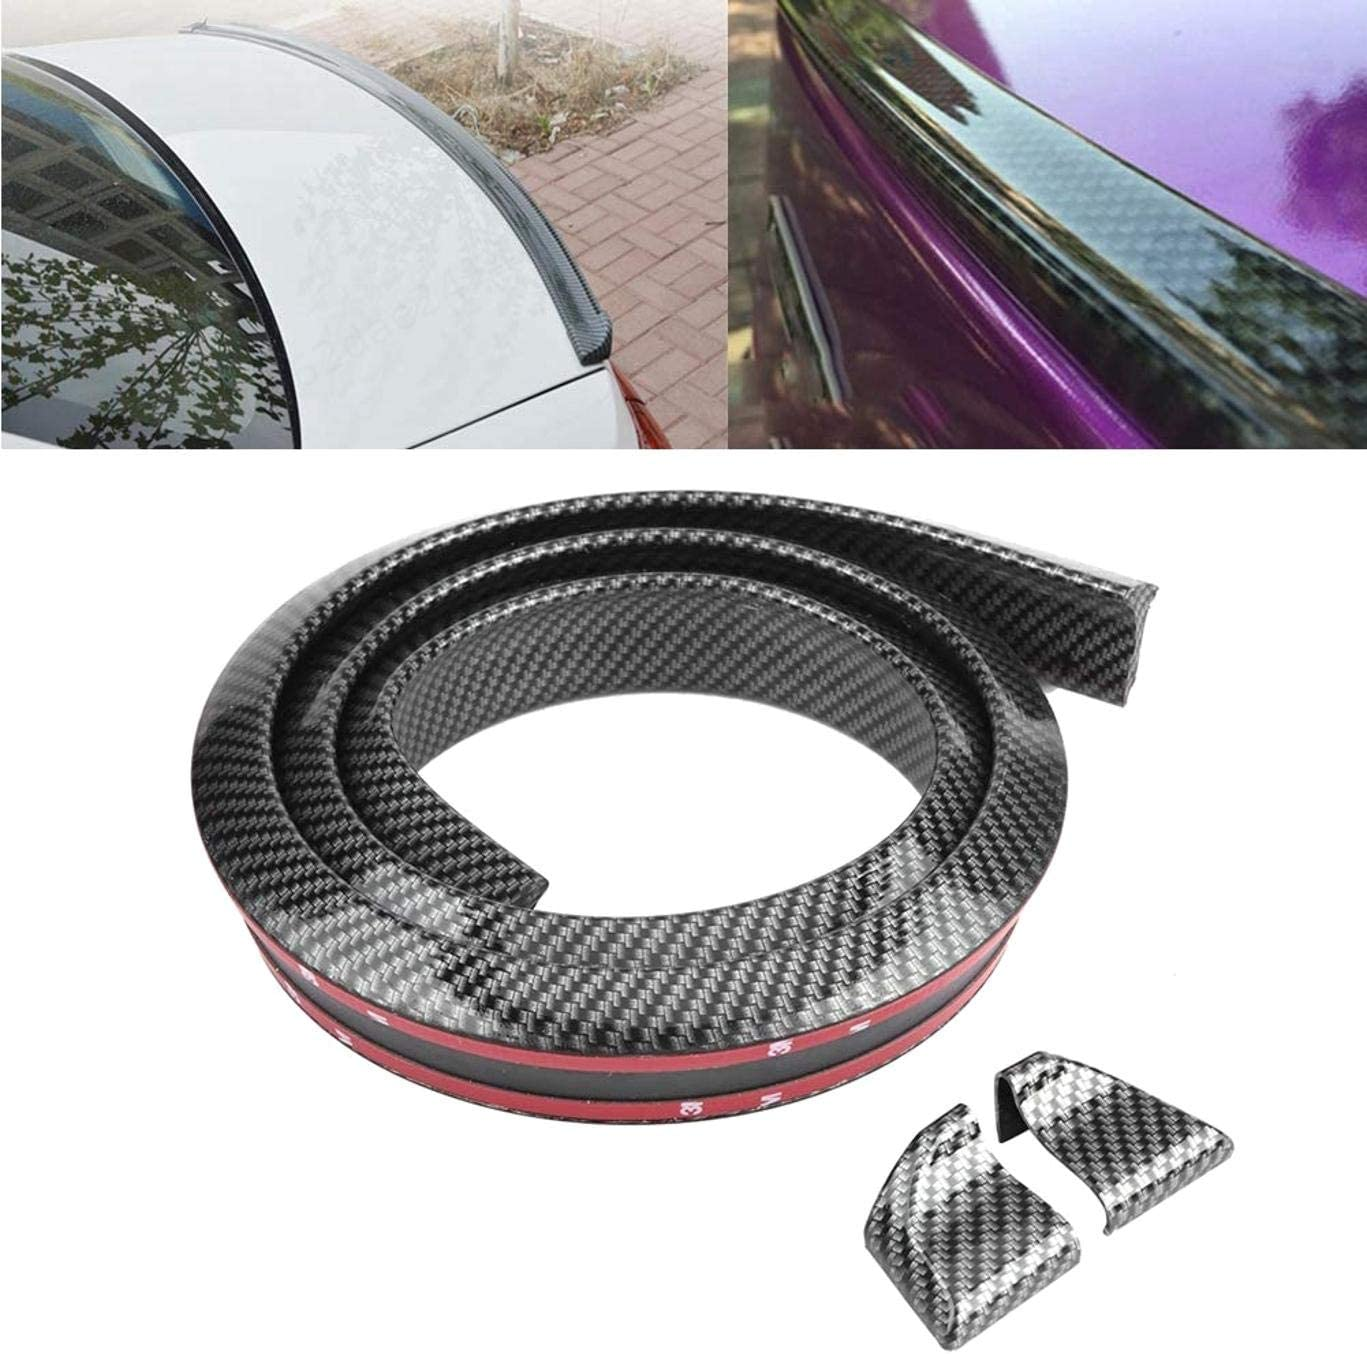 DULALA Spoiler Trasero Universal 1.6m / 5.2 InchCar Spoiler Trasero Cinta Carbono Cola Decoración Fibra de Carbono Soft Rubber Car Rear Roof Trunk Spoiler Wing Lip Sticker Protect